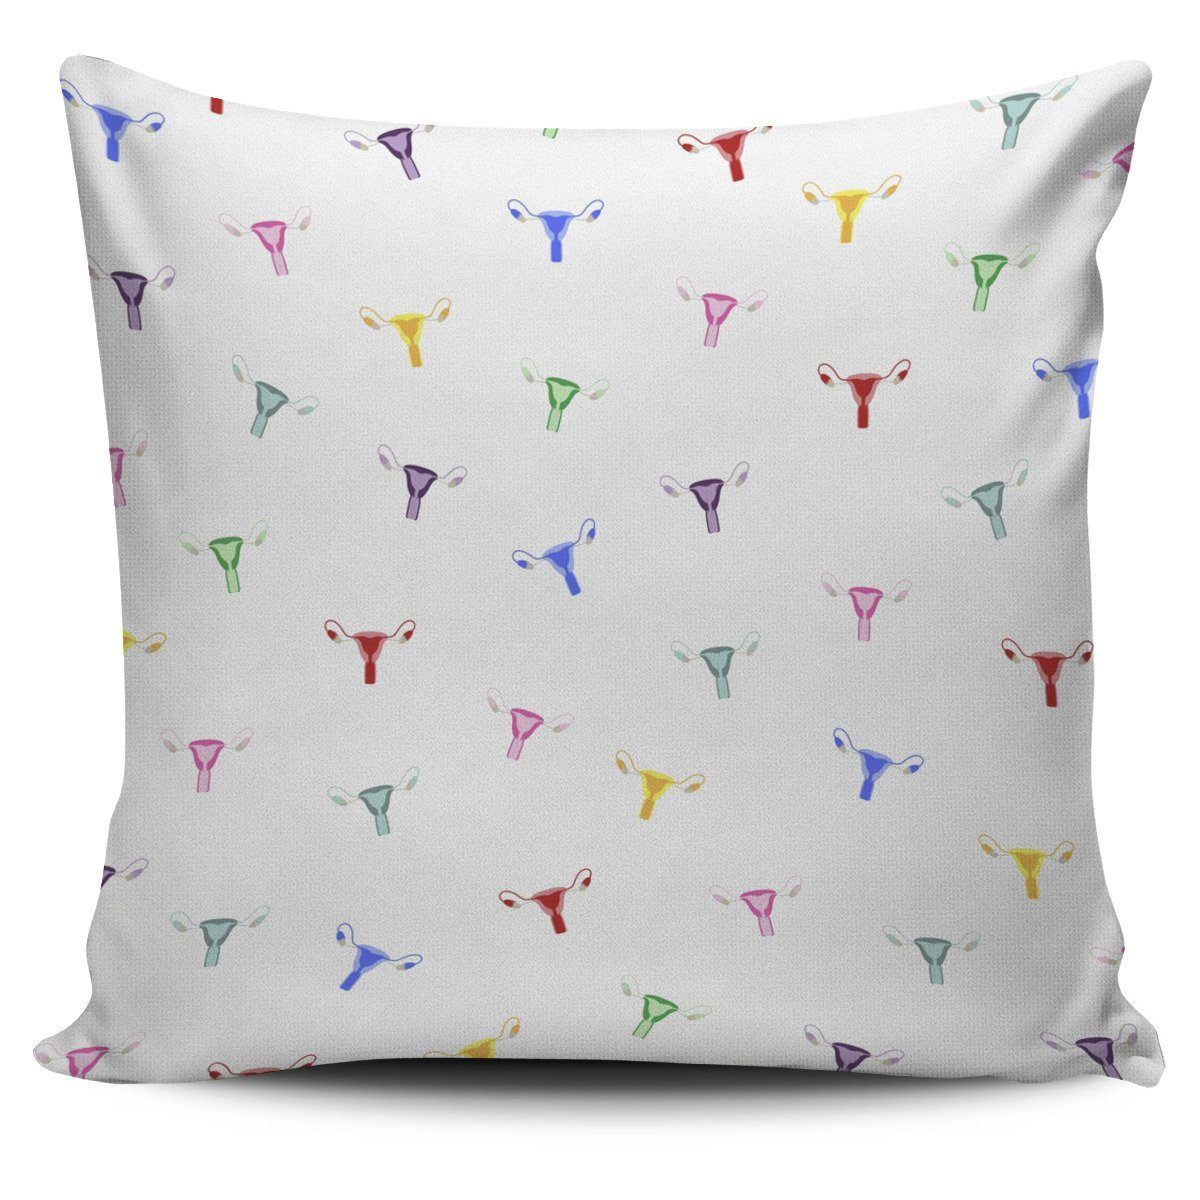 Rainbow Uterus Confetti Pillow Cover